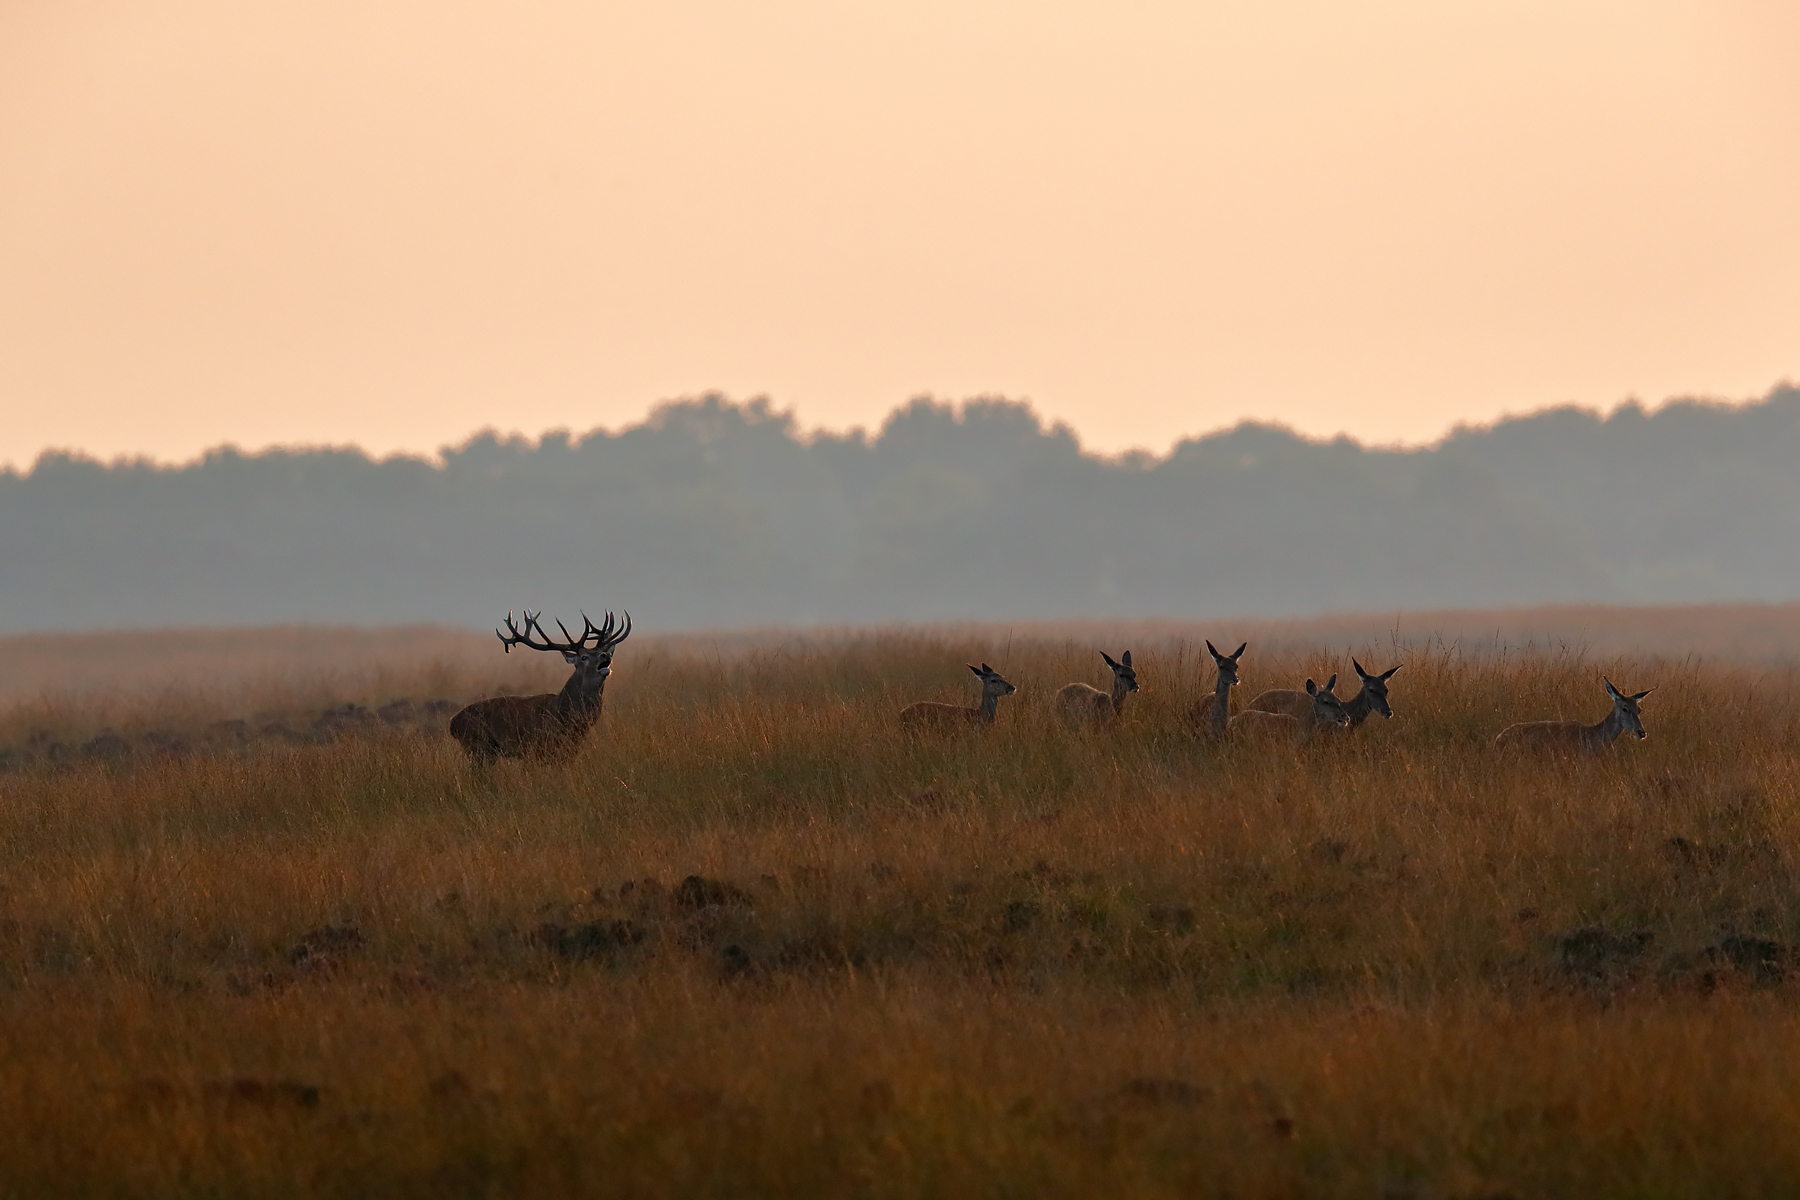 Red Deer @ National Park De hoge Veluwe